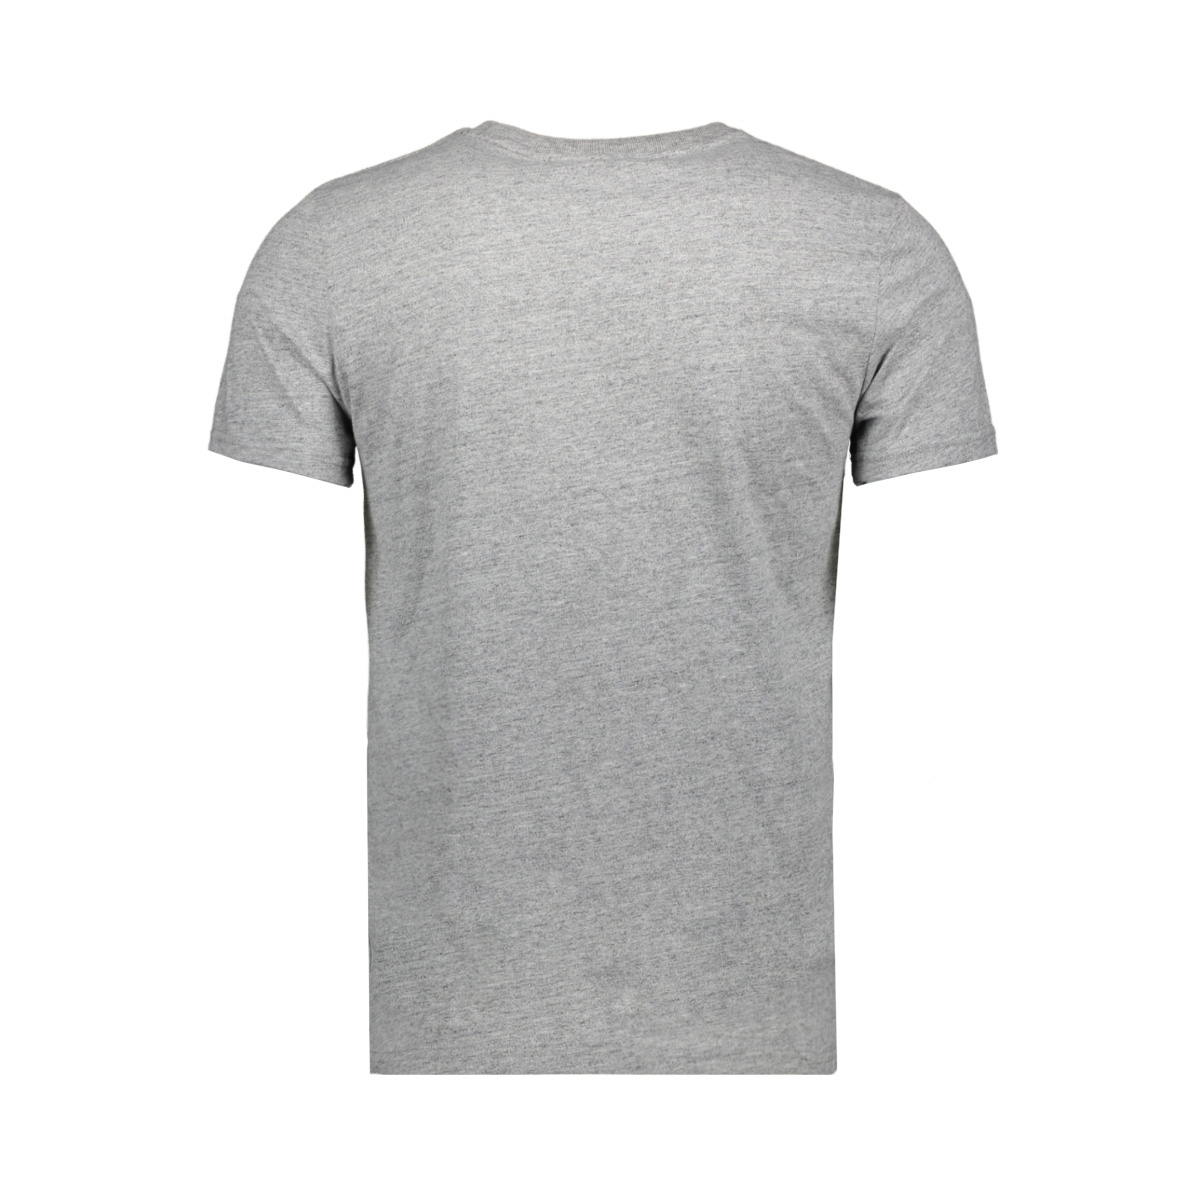 vl cross hatch tee m1010090a superdry t-shirt collective dark grey grit